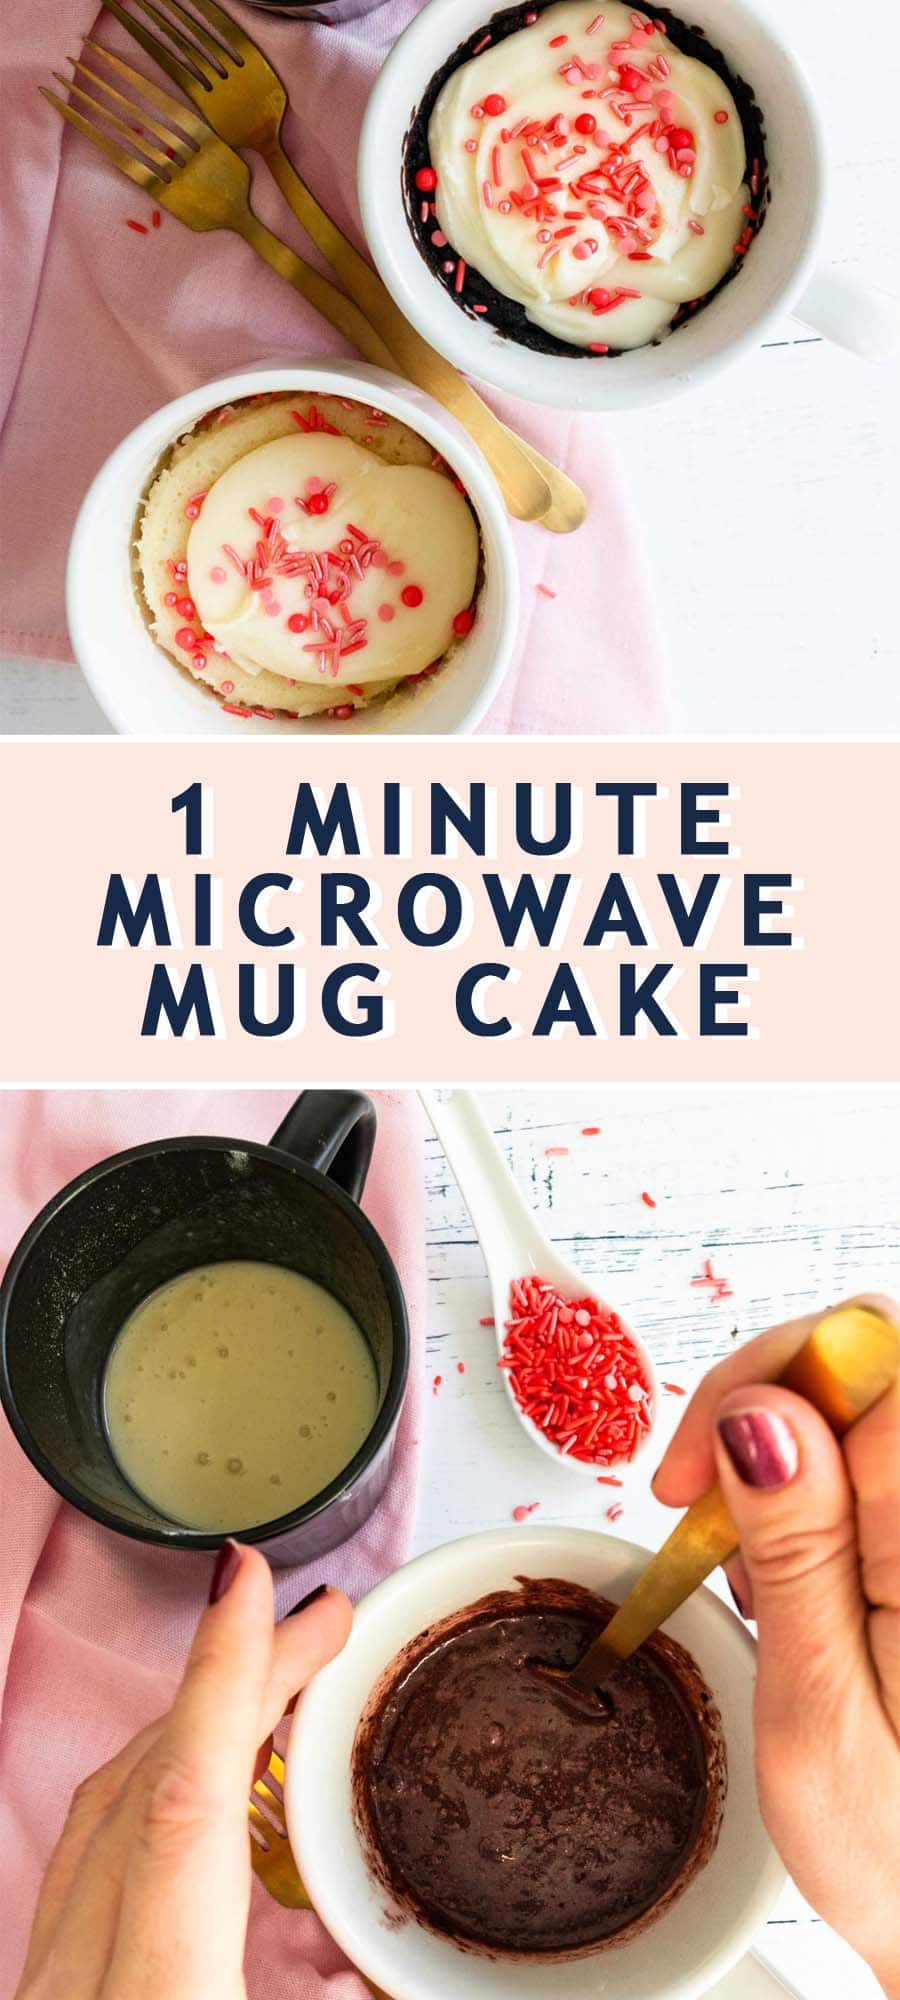 photo recipe card on how to make the perfect with mug cake by top Houston lifestyle blogger Ashley Rose of Sugar & Cloth